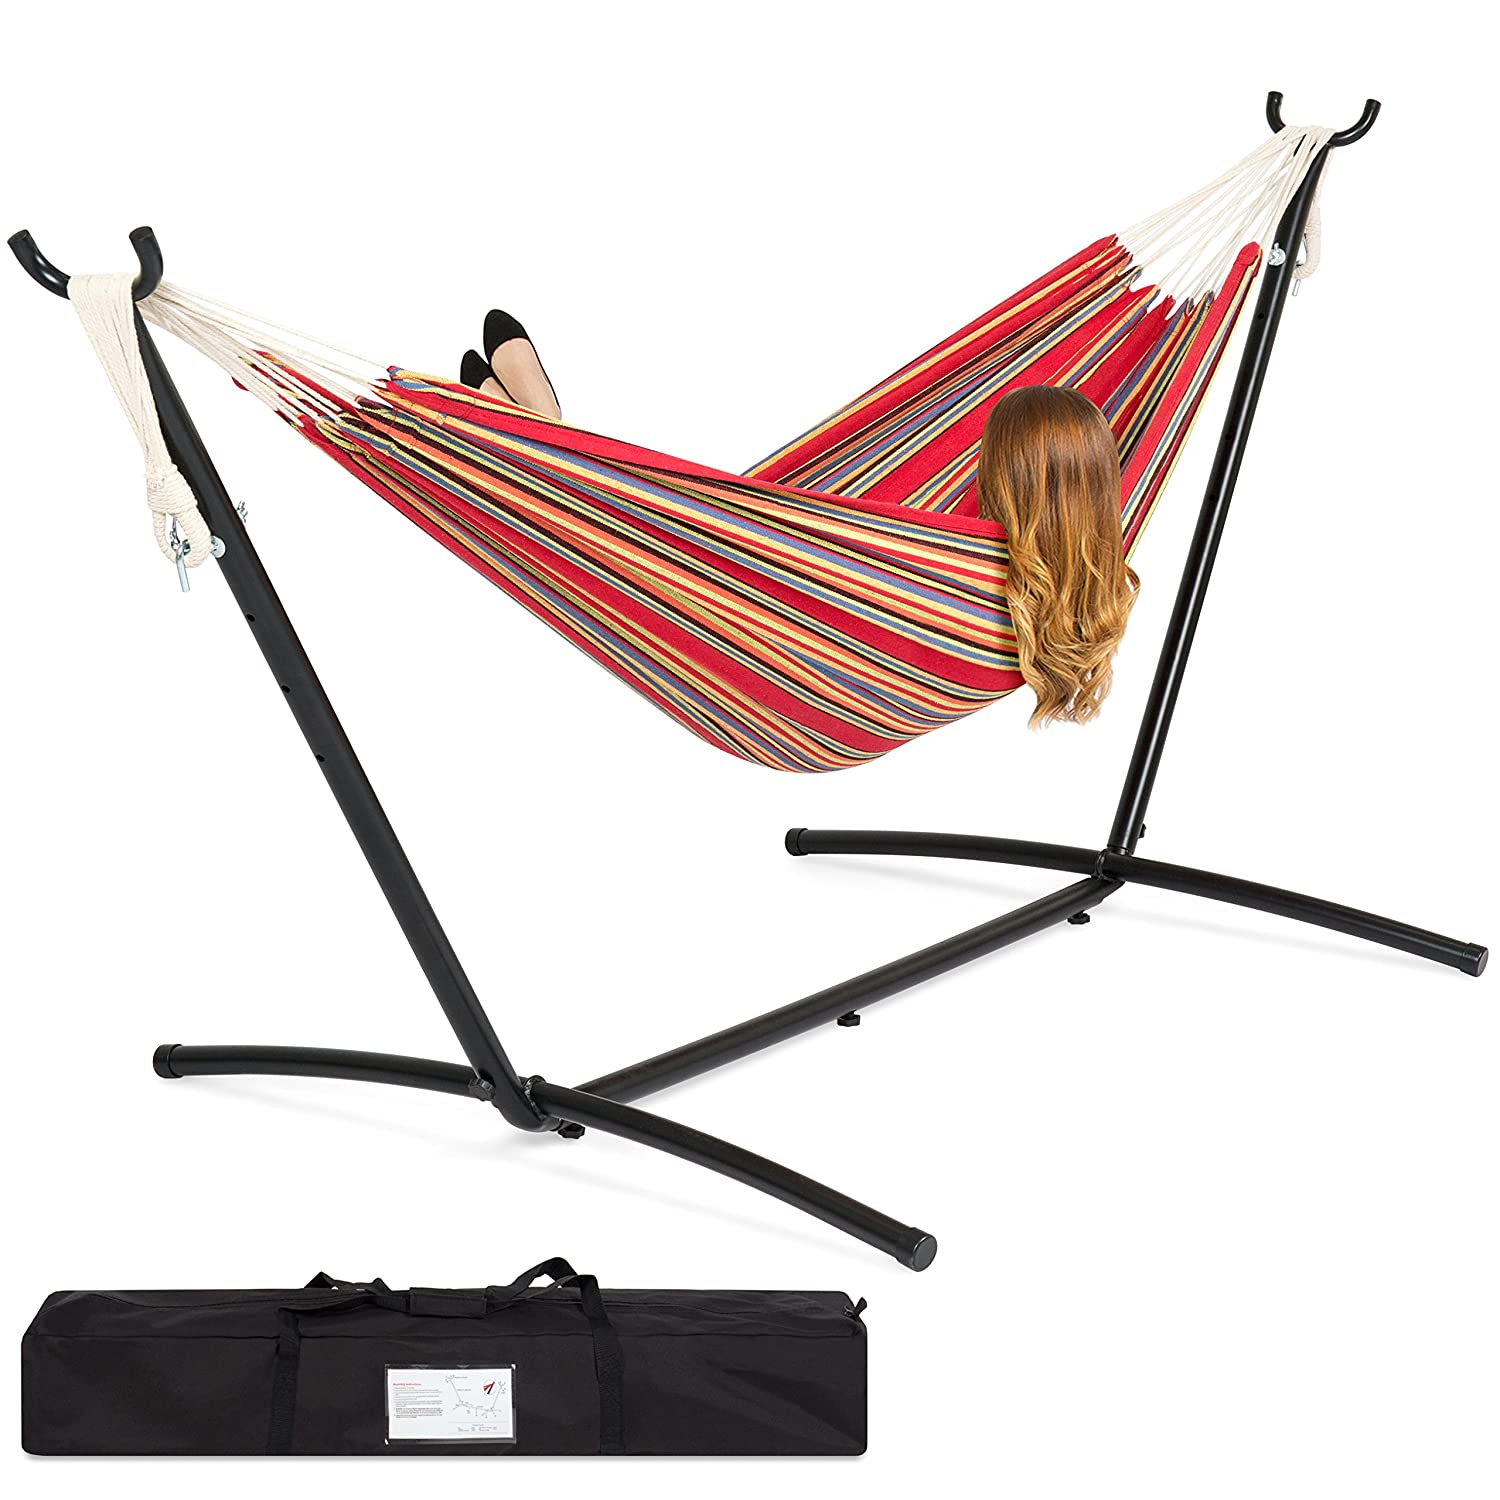 Portable Space-Saving Steel Hammock Stand With Double Hammock and a Carrying Case